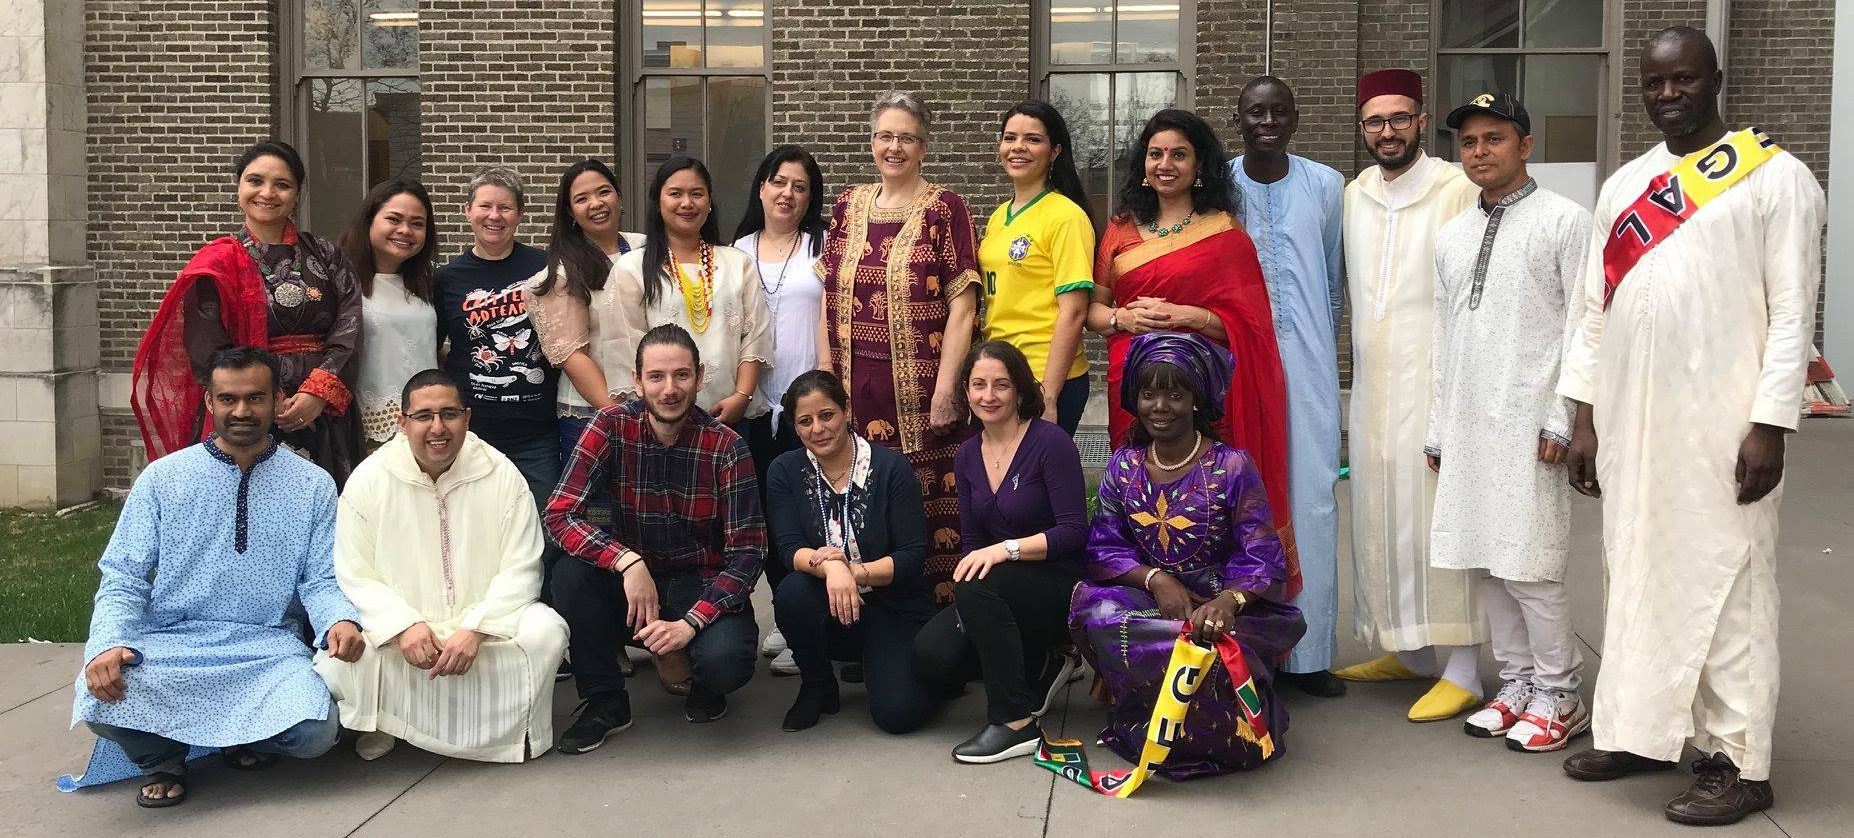 Fulbright DAI teachers and Joanna Masingila after their cultural presentations to the School of Education